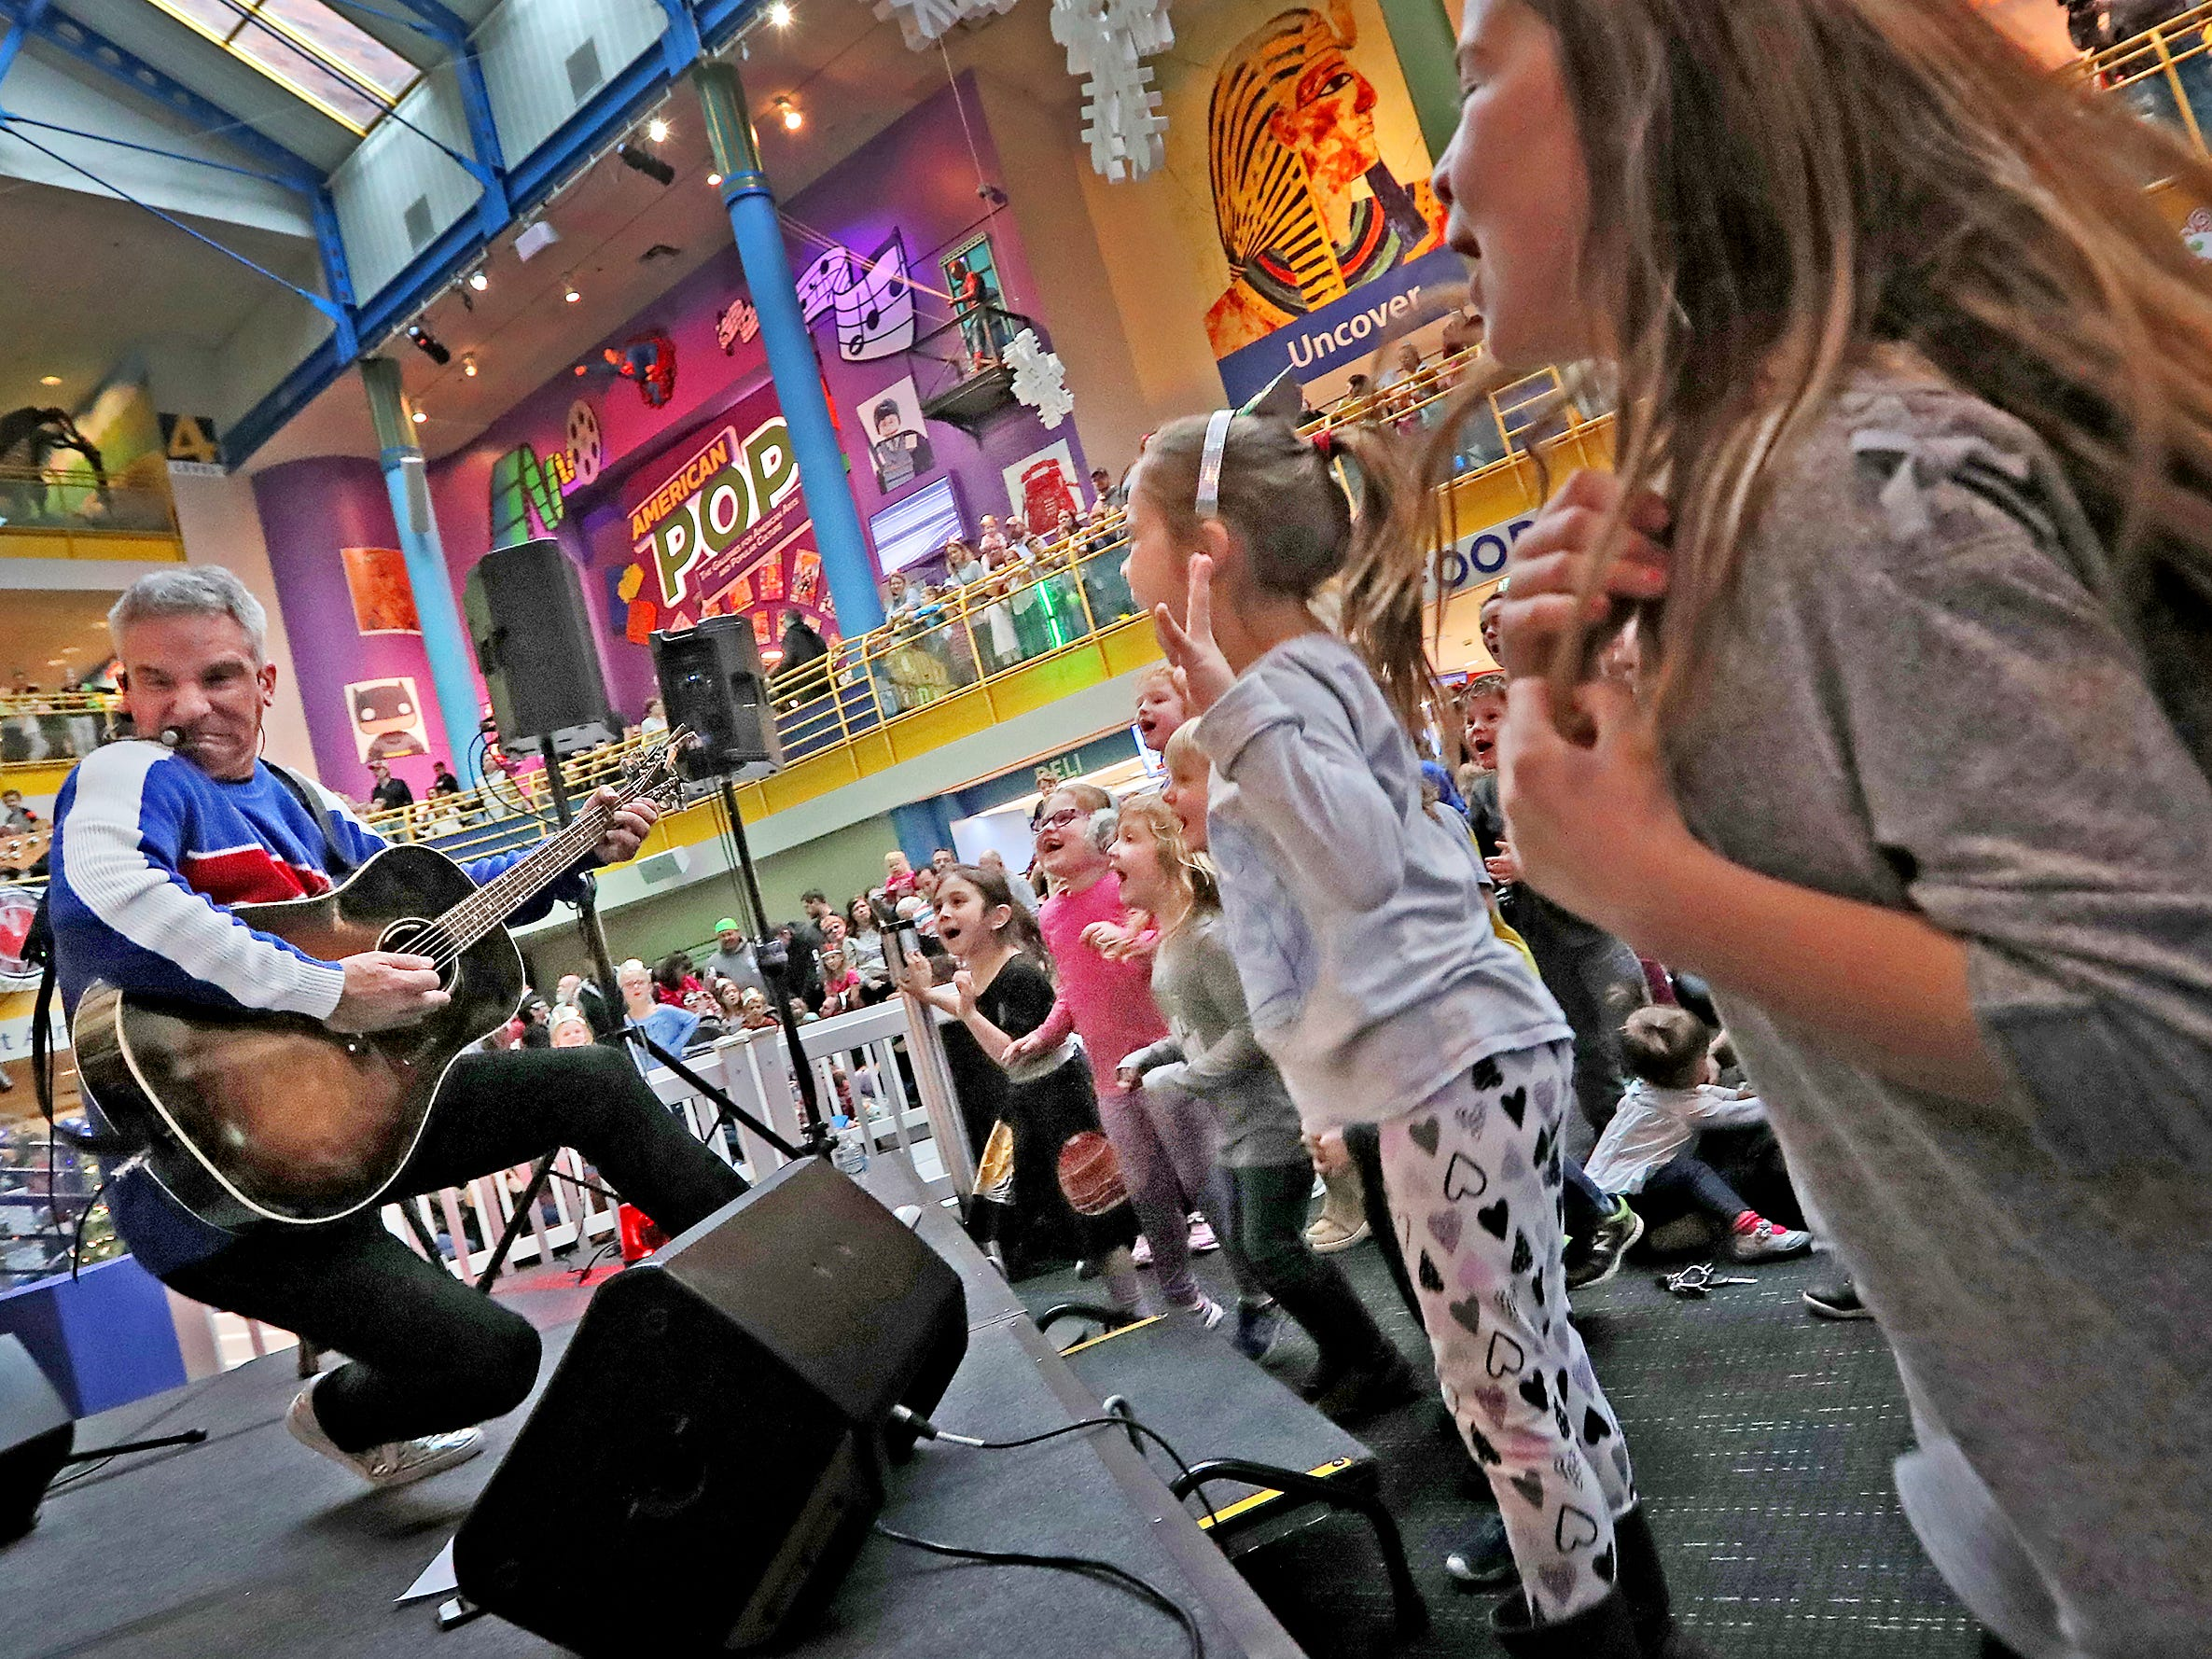 Zak Morgan,  left, pretends to fall as he and his group perform at the Countdown to noon celebration at the Children's Museum of Indianapolis, Monday, Dec. 31, 2018.